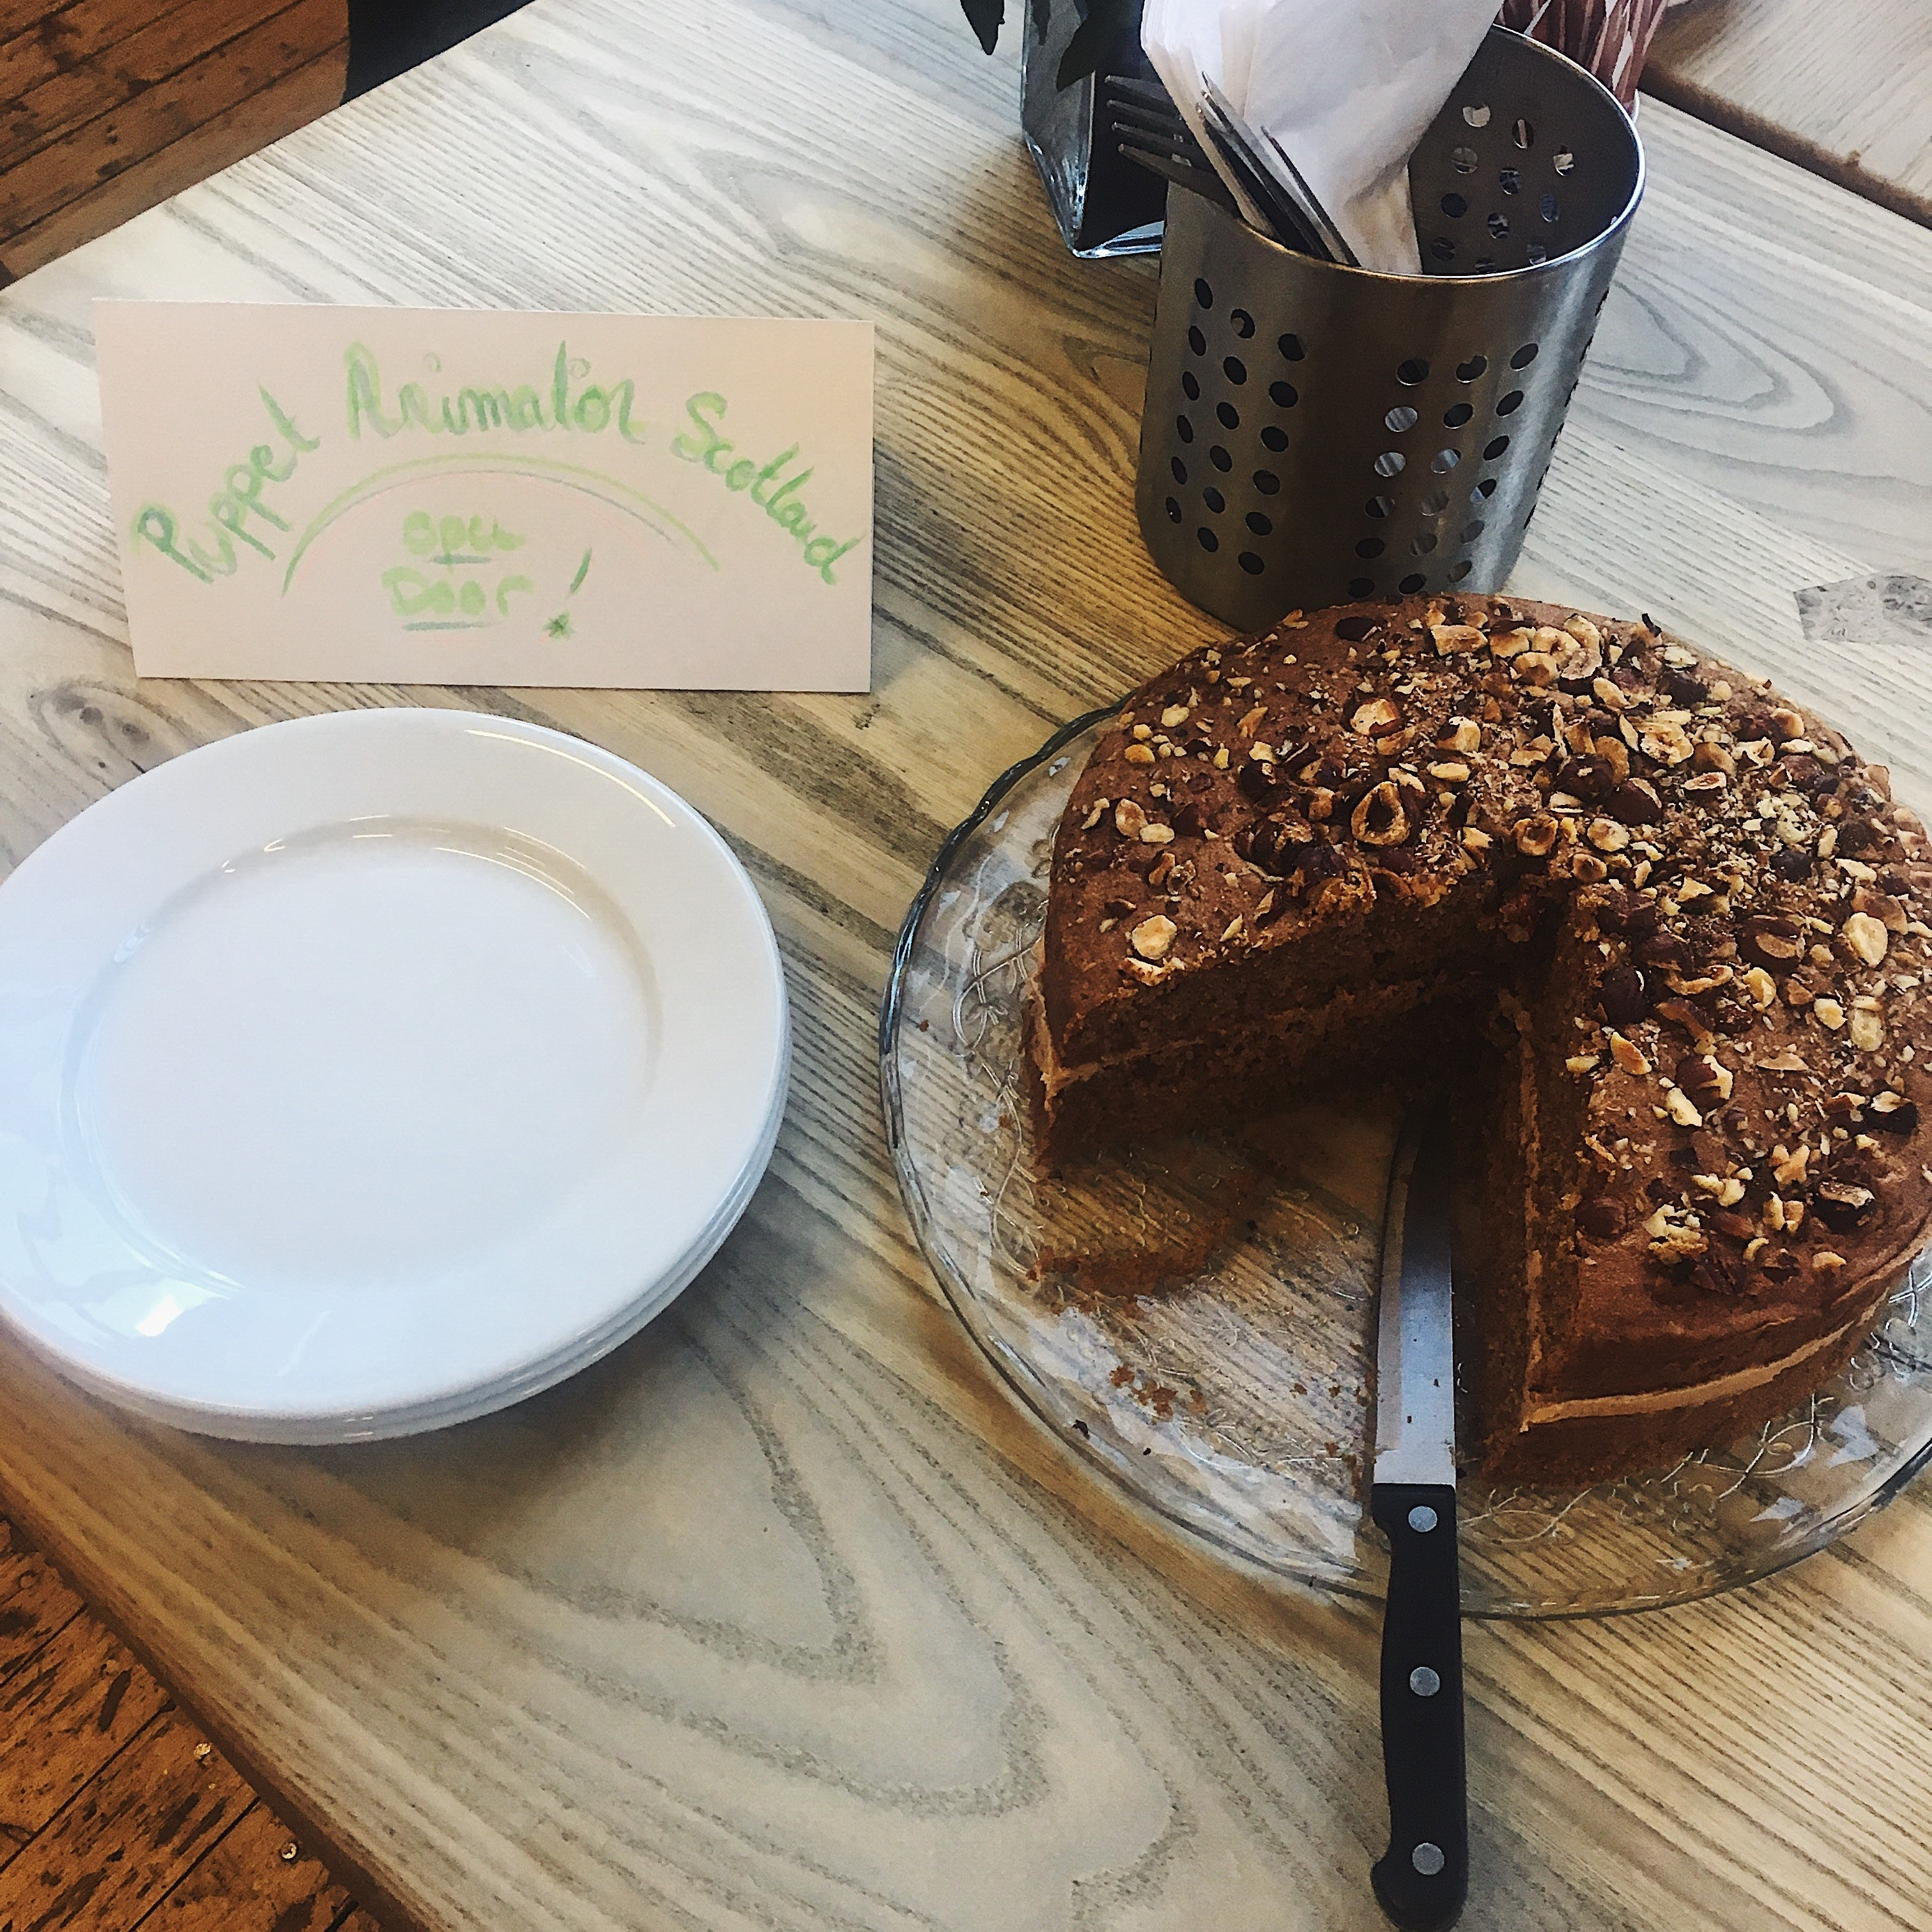 """a two layers brown hazelnut cake sits on a plate, a slice cut out of it and the knife still in place, to the right hand side of the photo. On the left, a pile of empty plates and a sign reading """"Puppet Animation Scotland Open Doors"""". The whole is on a wooden table."""